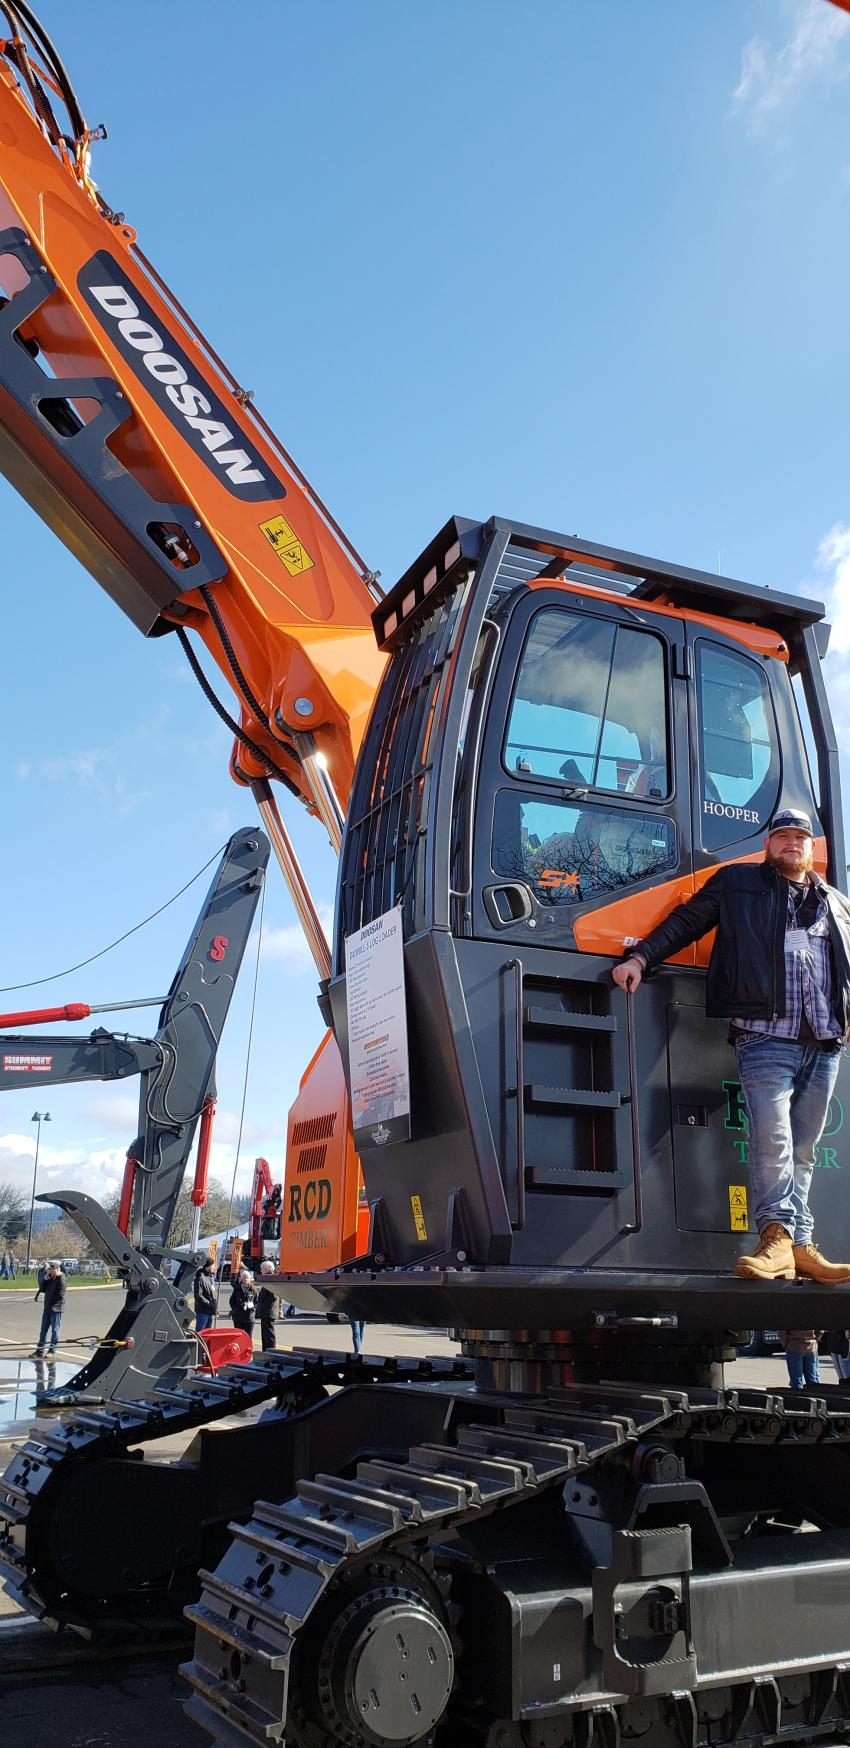 Cooper Brunoff, operations manager of Cascade Trader, Doosan's newest dealer in Idaho, rocks a pose on the Doosan excavator. In the 28-33 metric ton size class, few machines match the Doosan DX300LC. It has the horsepower to tackle larger projects. Visit Cascade Trader's new location: 53 West Boekel Rd. in Hayden, Idaho.